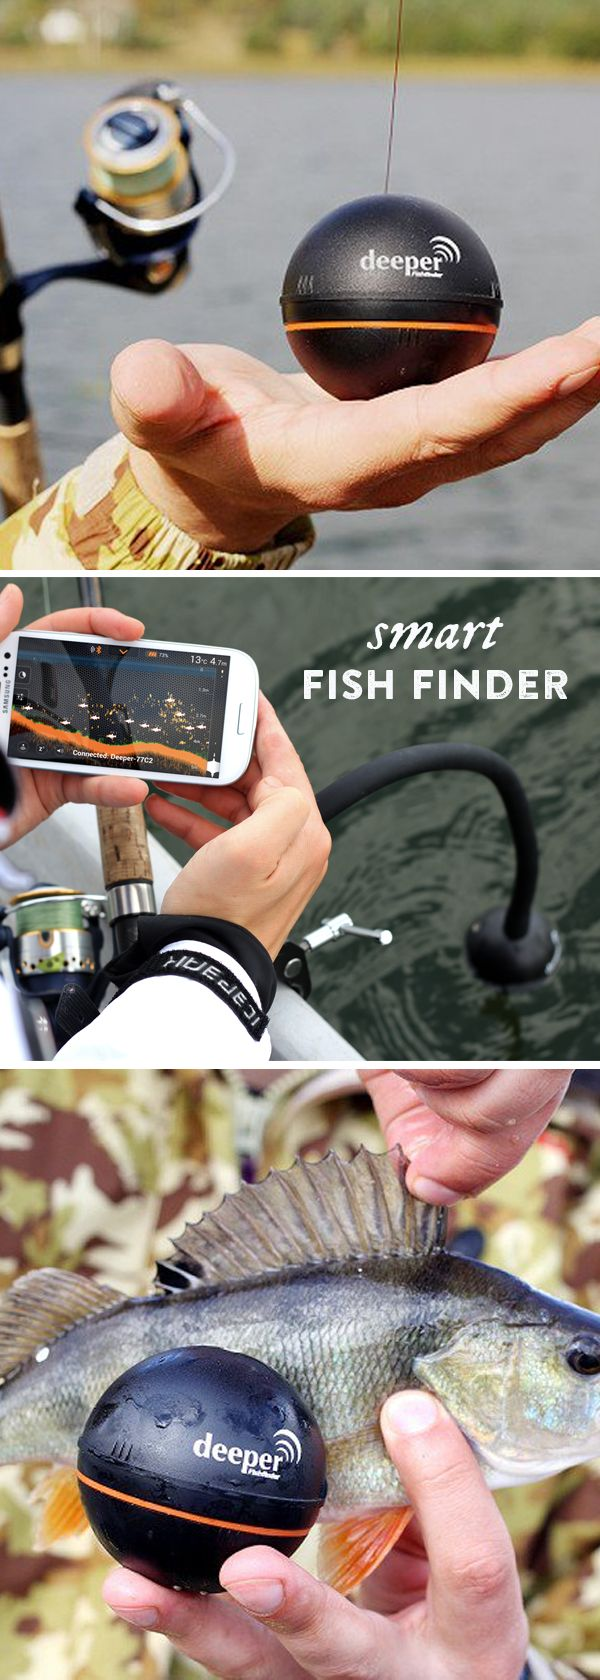 Cast this fish finder out on the water to get an instant diagram of the depth, waterbed contour, the size and location of fish, and the water temperature, too.